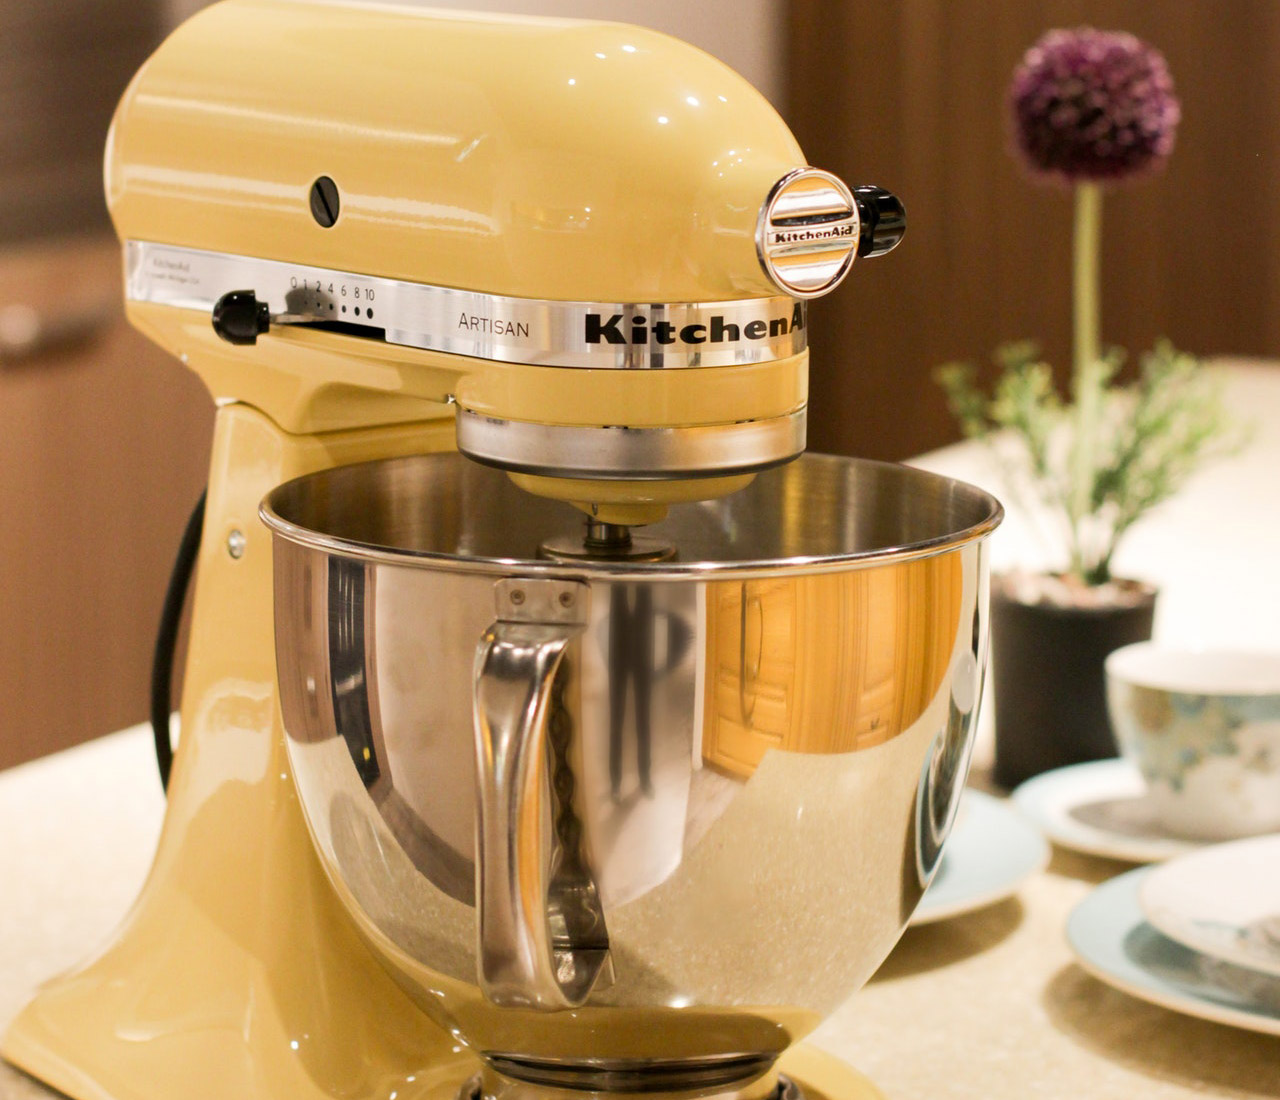 yellow kitchenaid stand mixer on the table